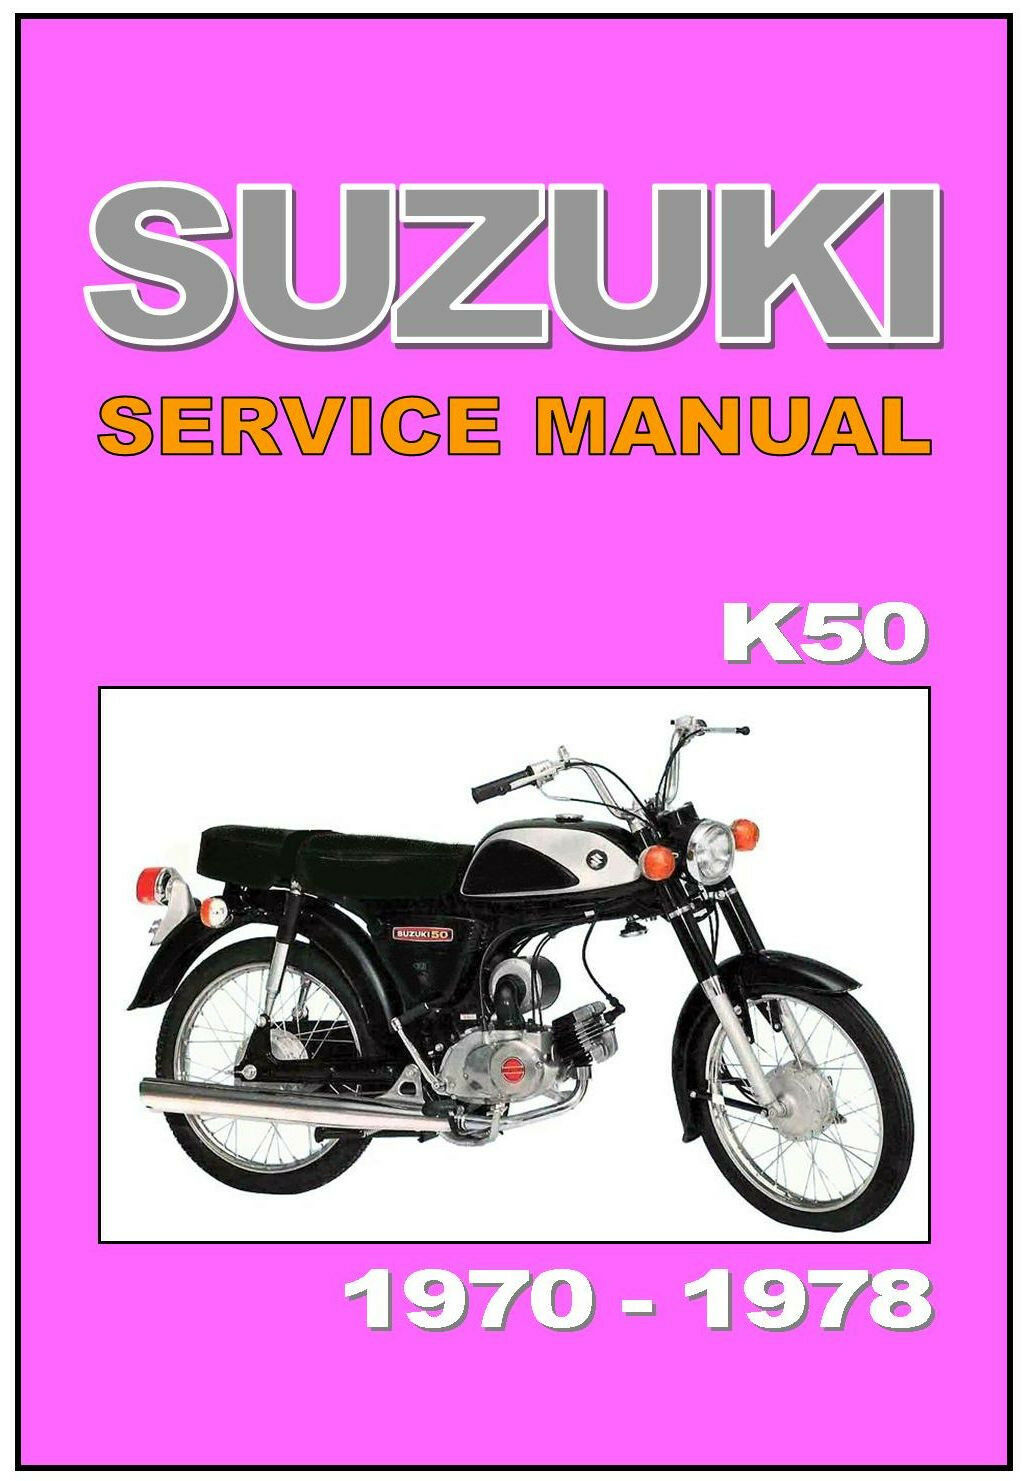 SUZUKI Workshop Manual K50 1970 1971 1972 1973 1974 1975 1976 1977 1978  Service 1 of 2Only 1 available ...